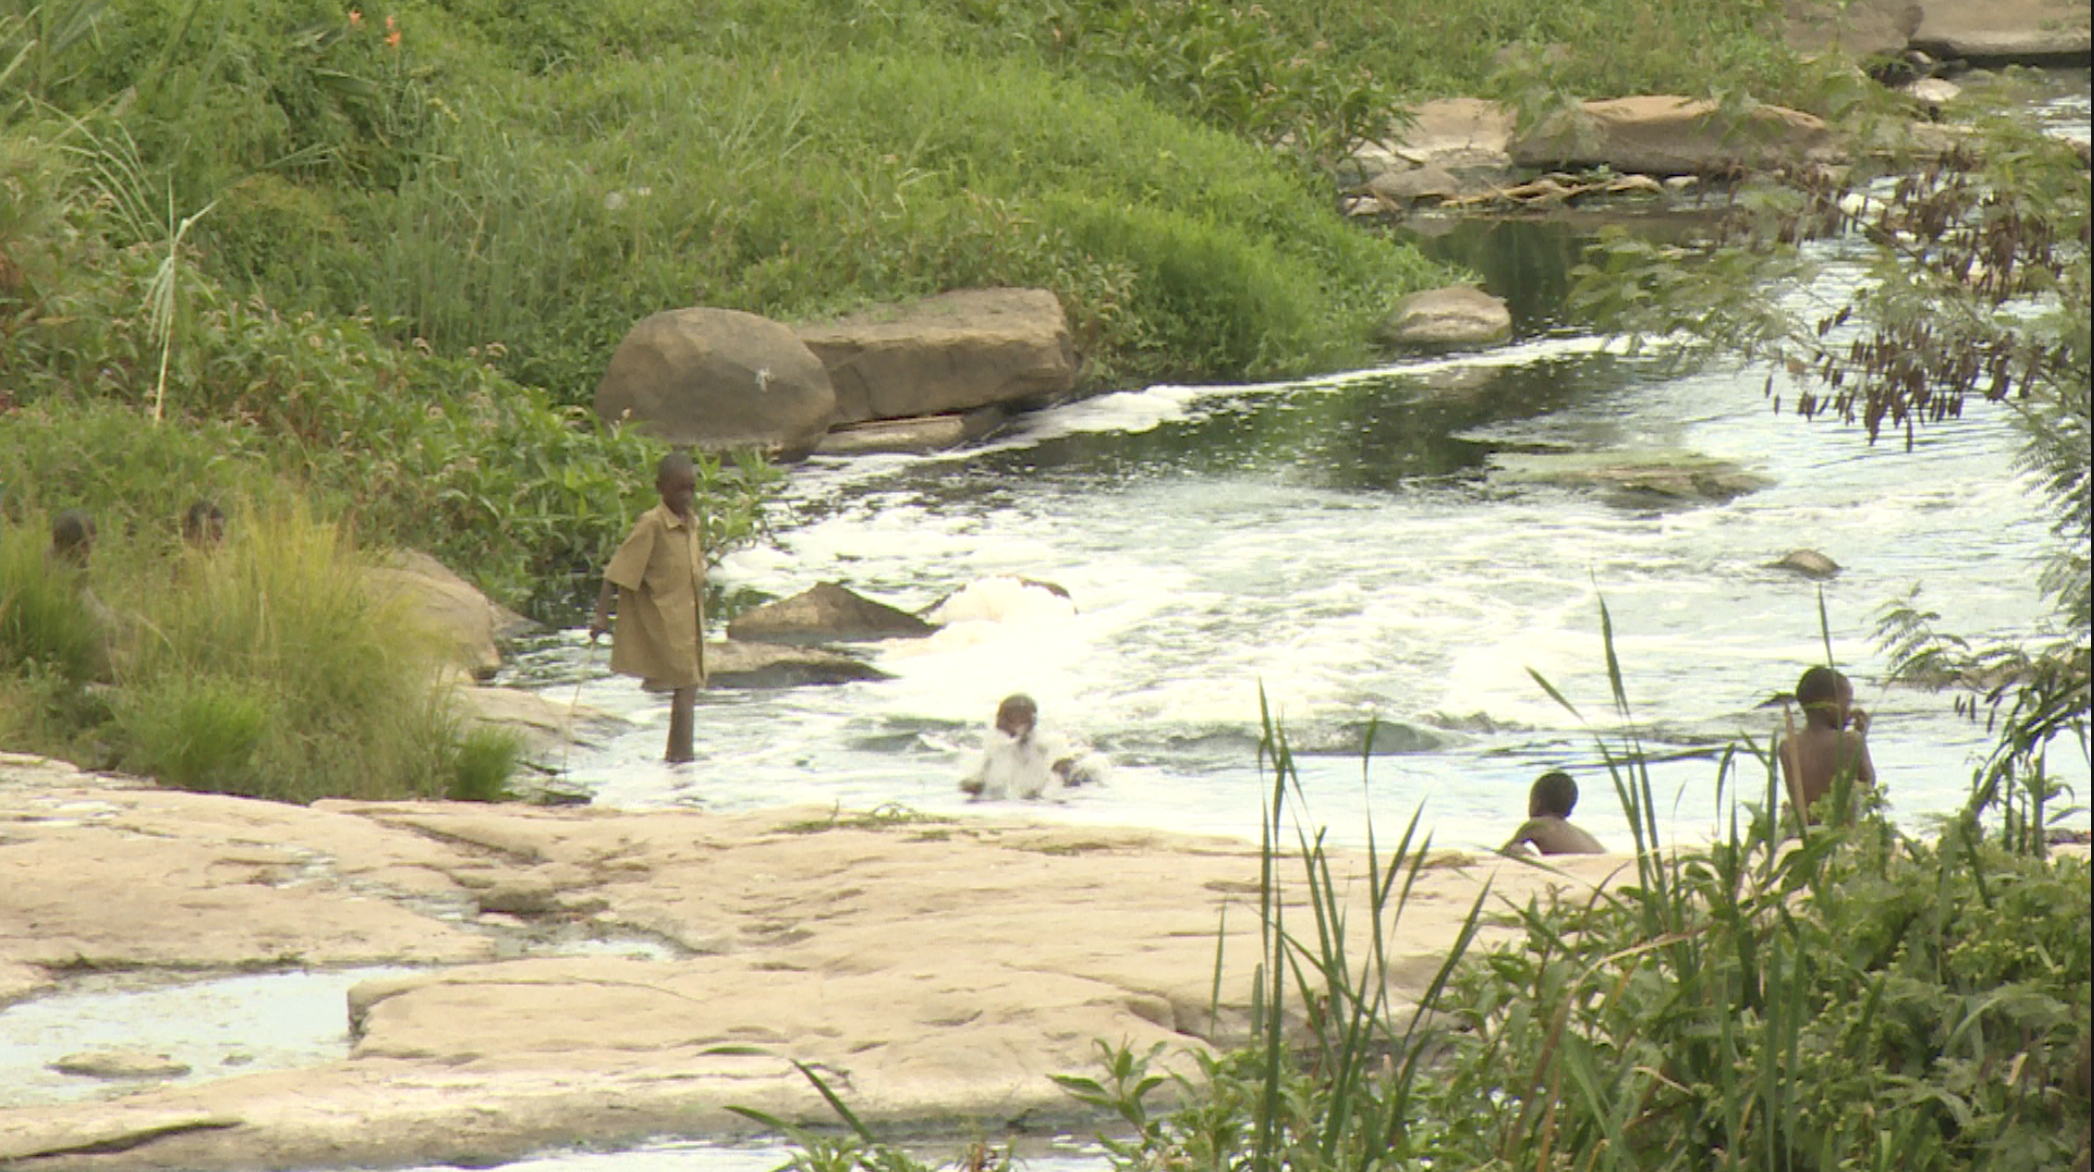 Children bath and swim in a river as people turn to unprotected sources of water in Harare, Zimbabwe, March 7, 2019.